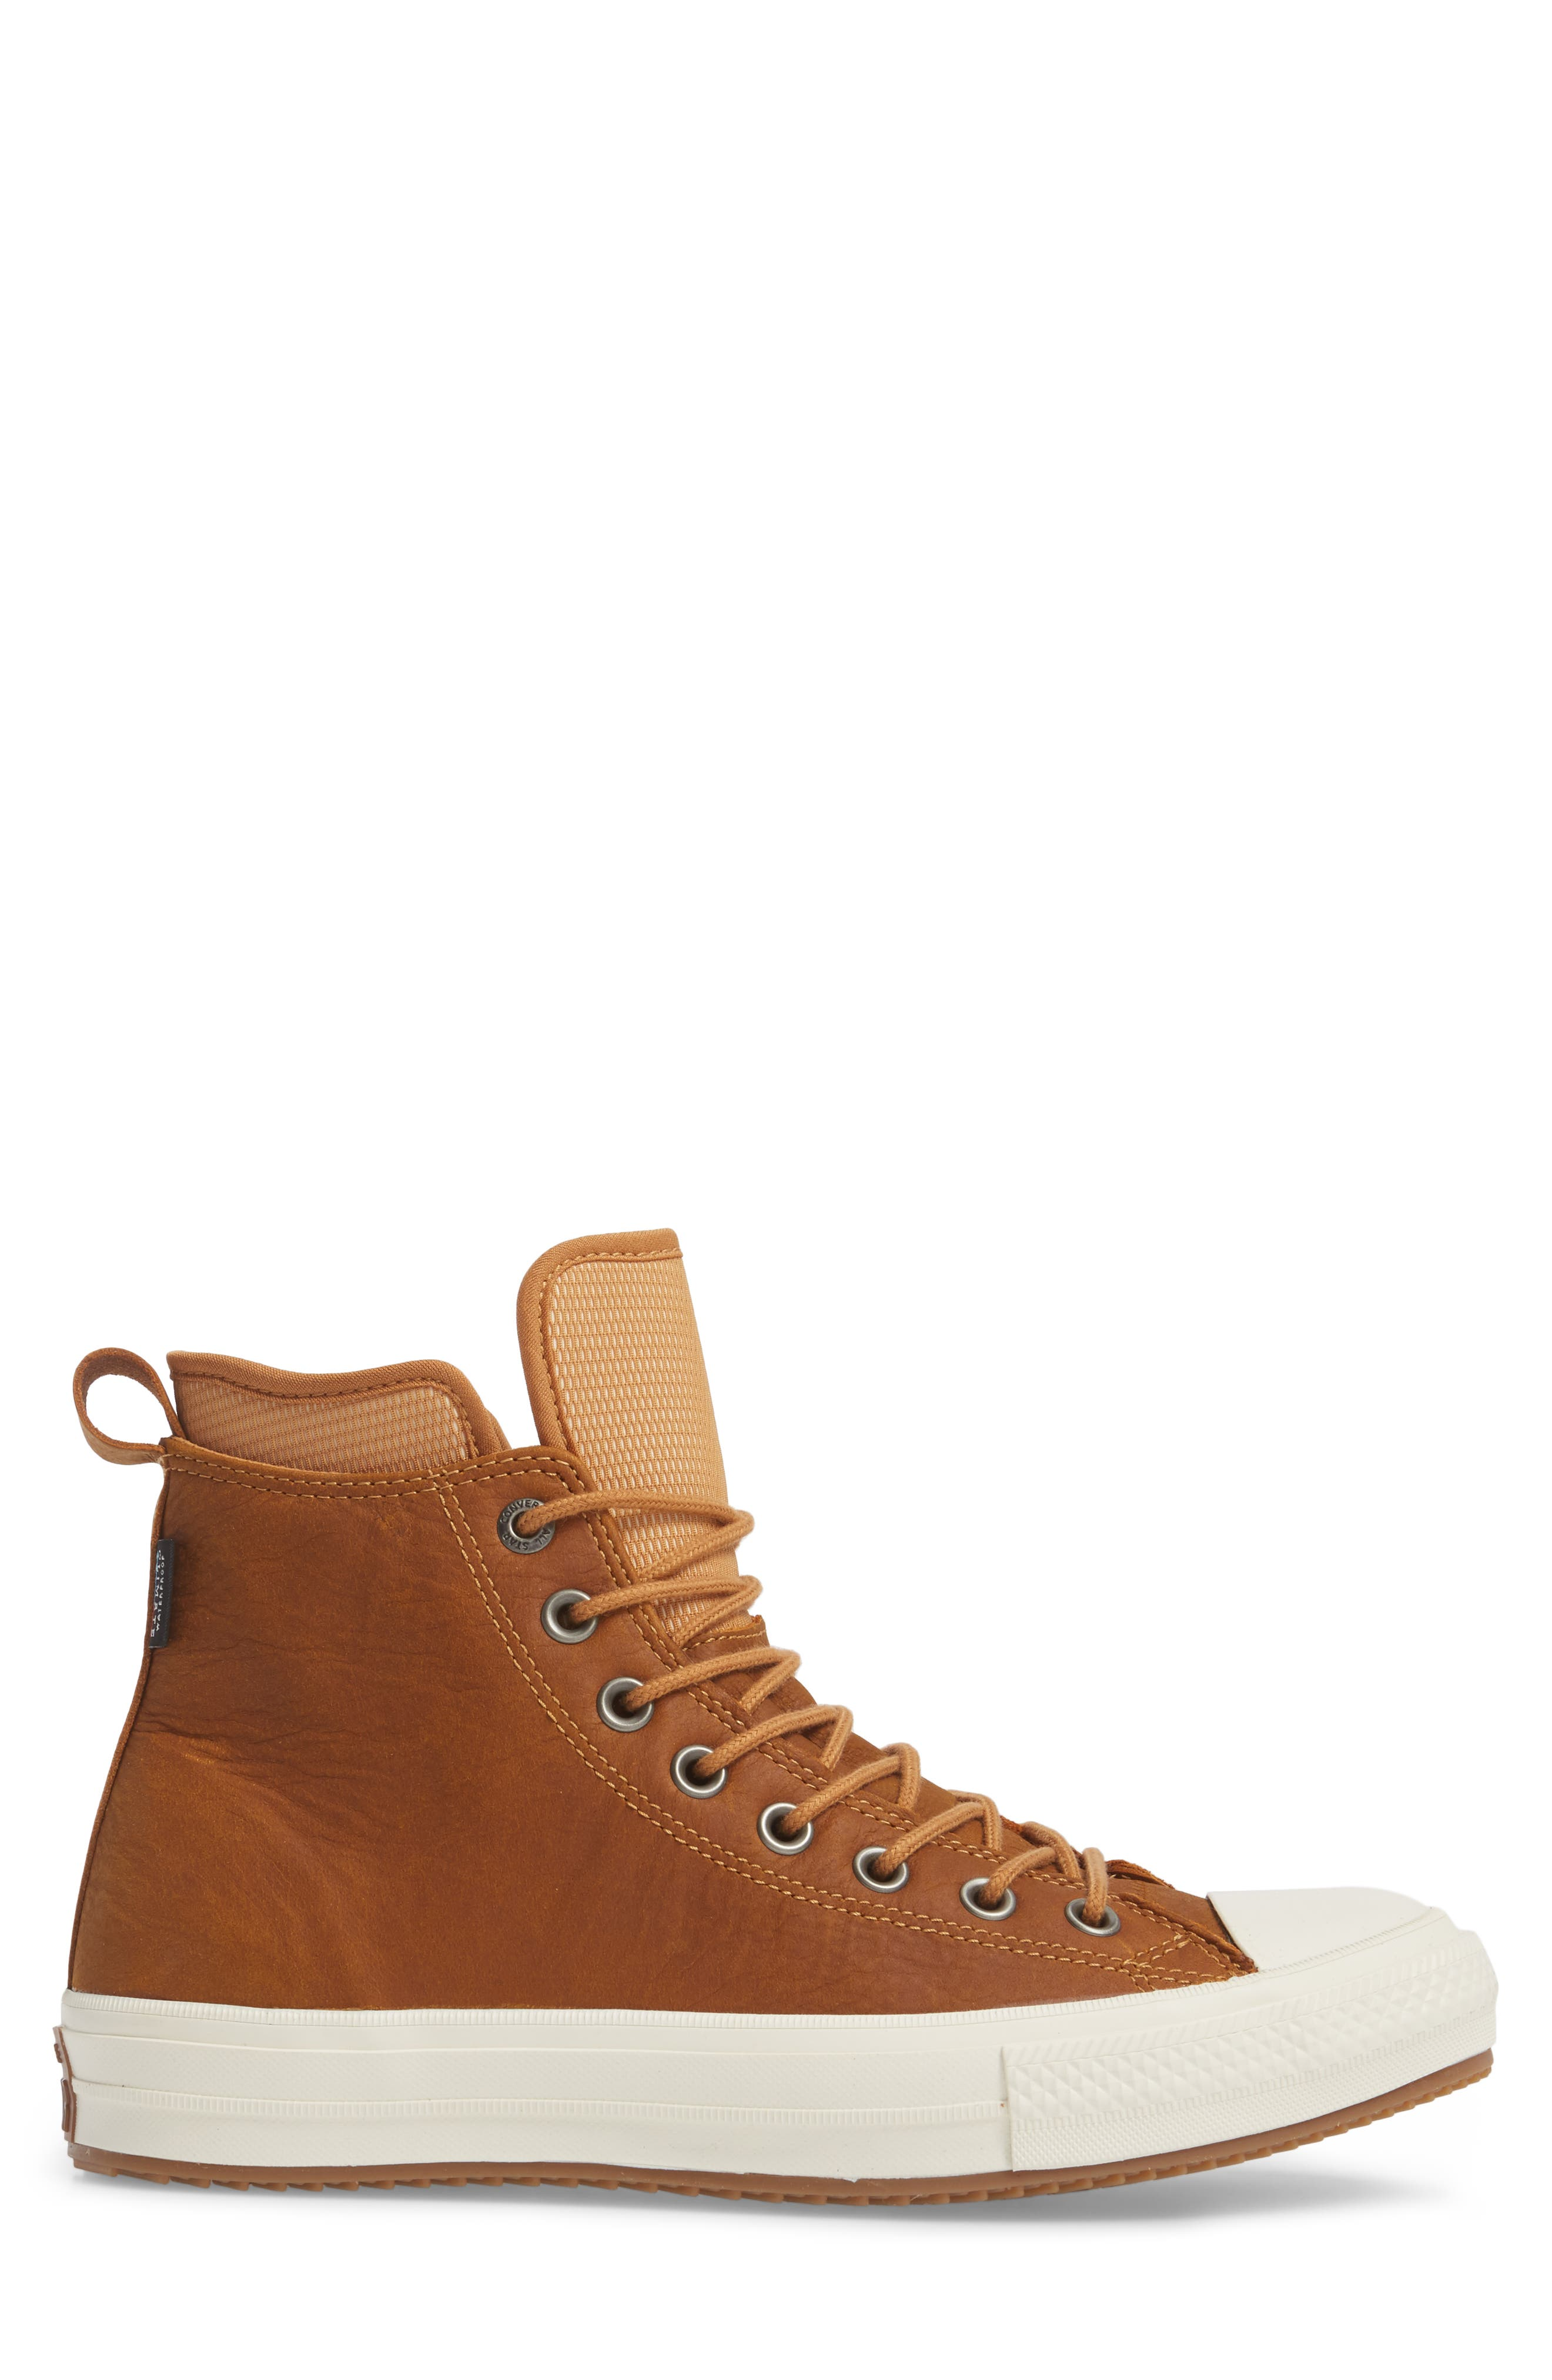 Chuck Taylor<sup>®</sup> All Star<sup>®</sup> Waterproof Sneaker,                             Alternate thumbnail 3, color,                             Raw Sugar